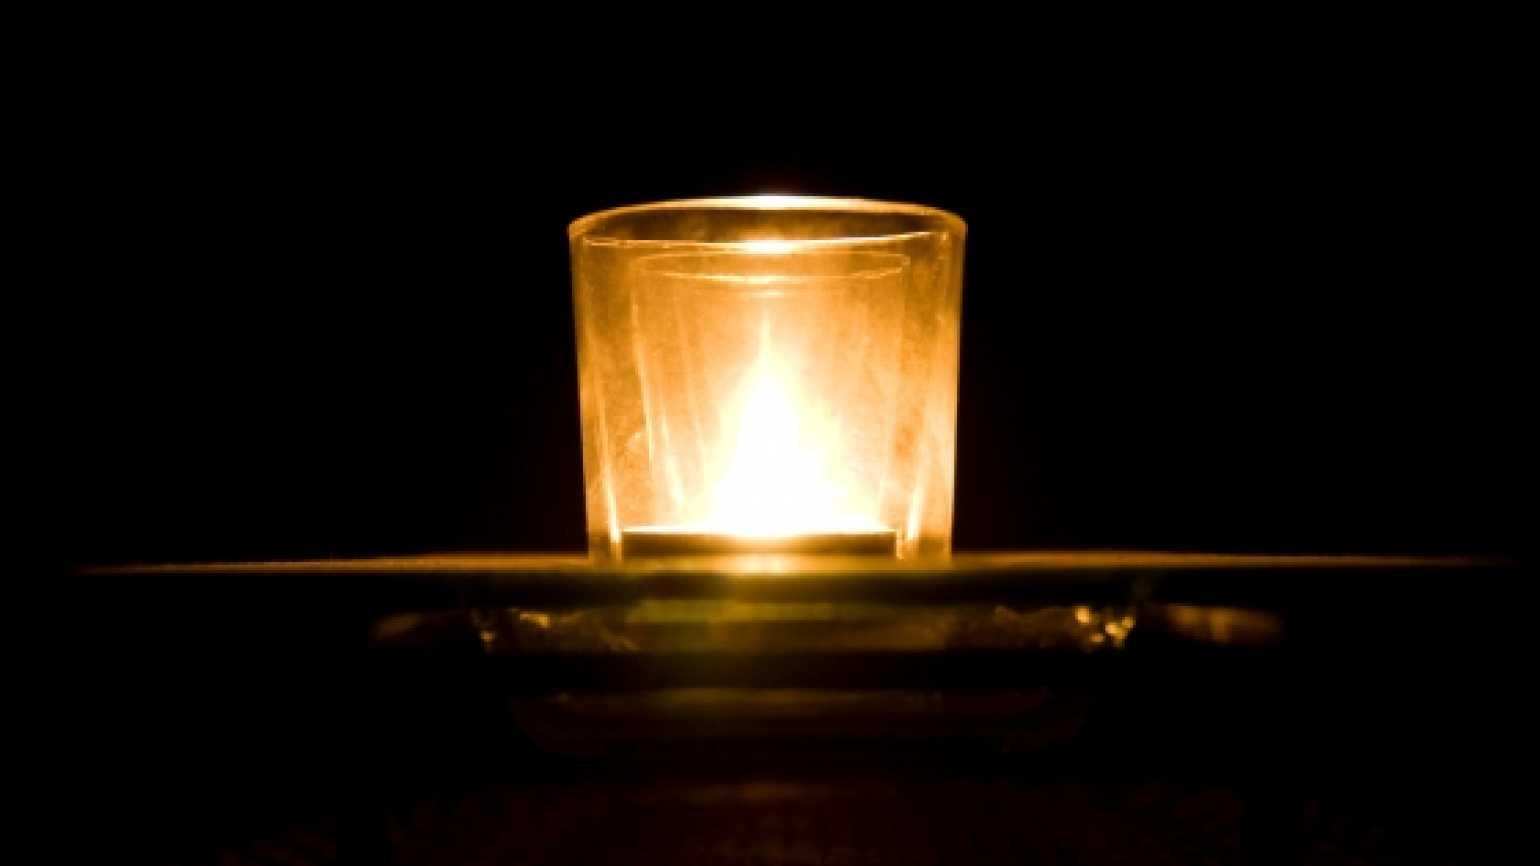 a single, lit votive candle